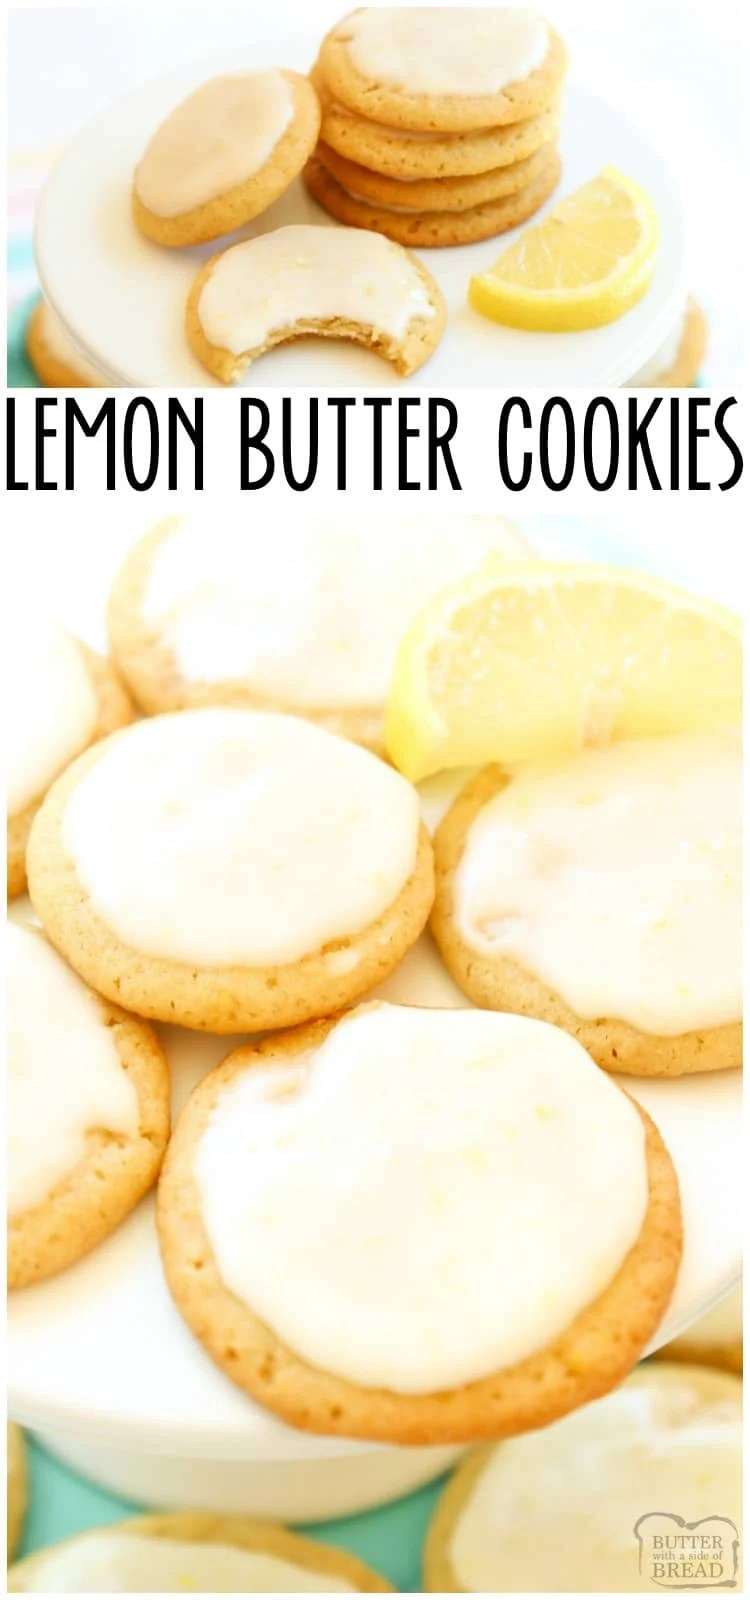 Lemon Butter Cookies are a delectable take on the classic butter cookies recipe. This lemon cookie recipe makes the best of both sweet and sour flavors!